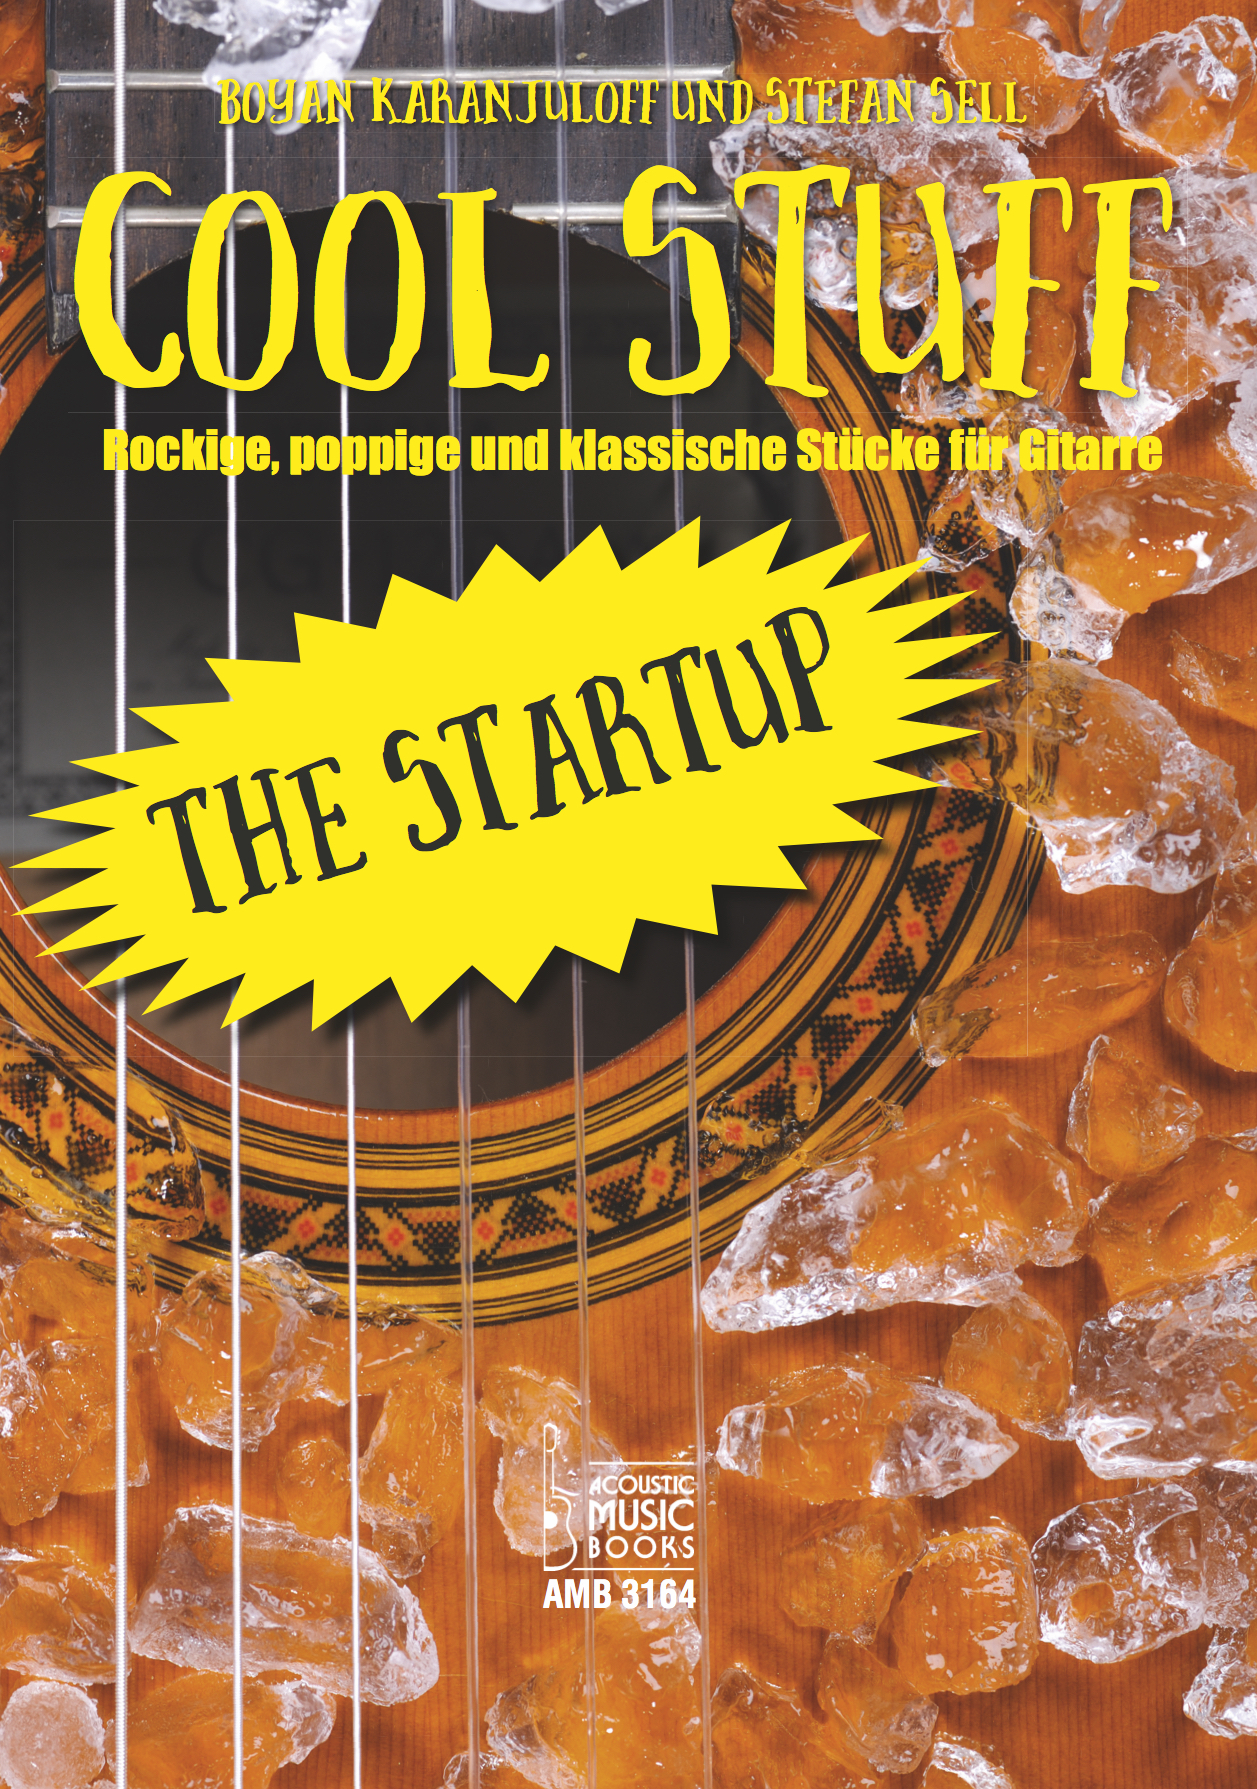 U1_Cool_Stuff_The_Startup